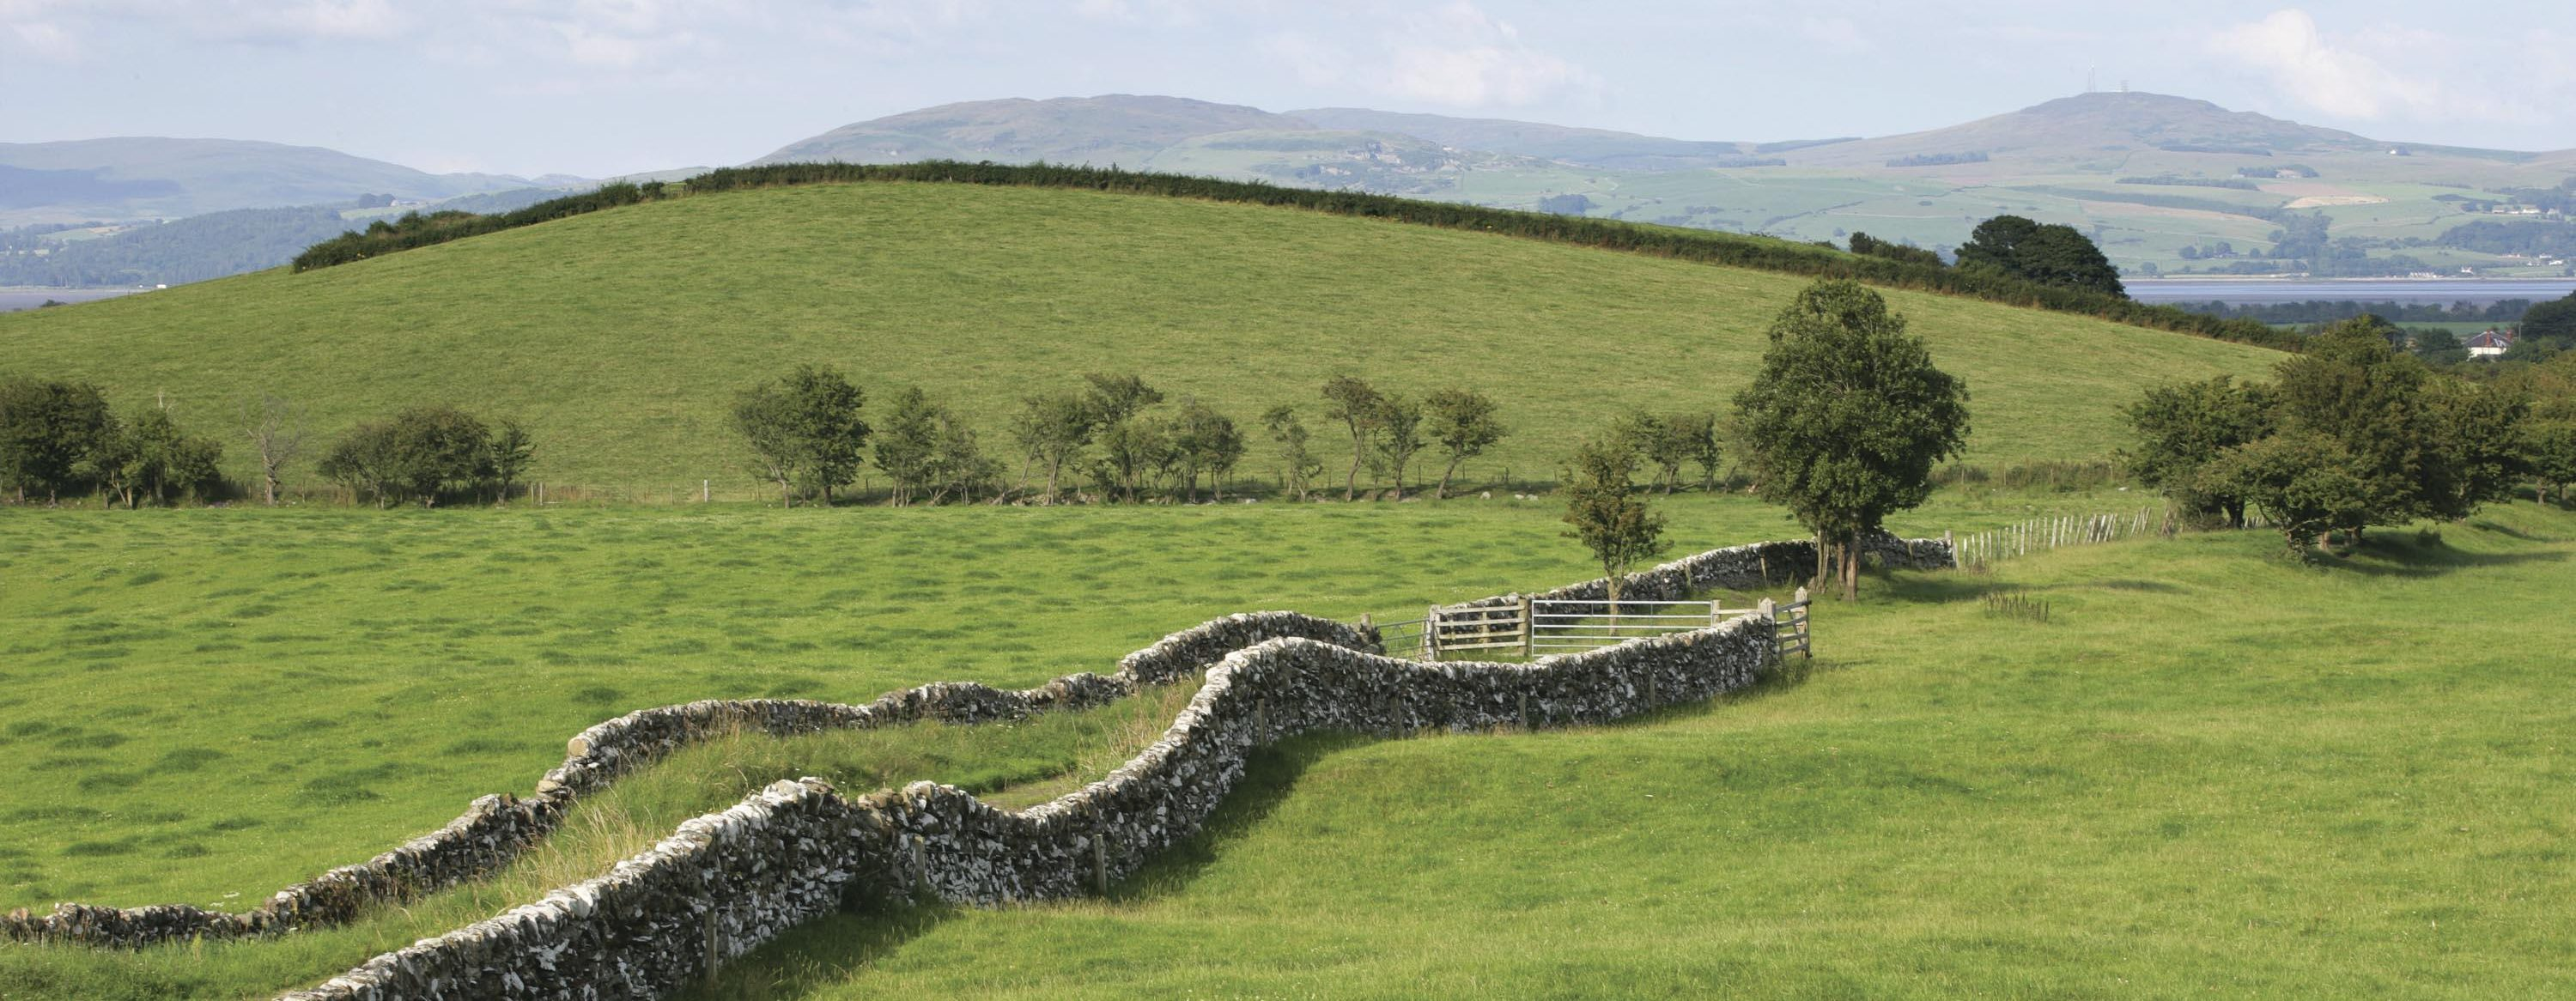 Galloway landscape - dry stane wall, hills and pasture